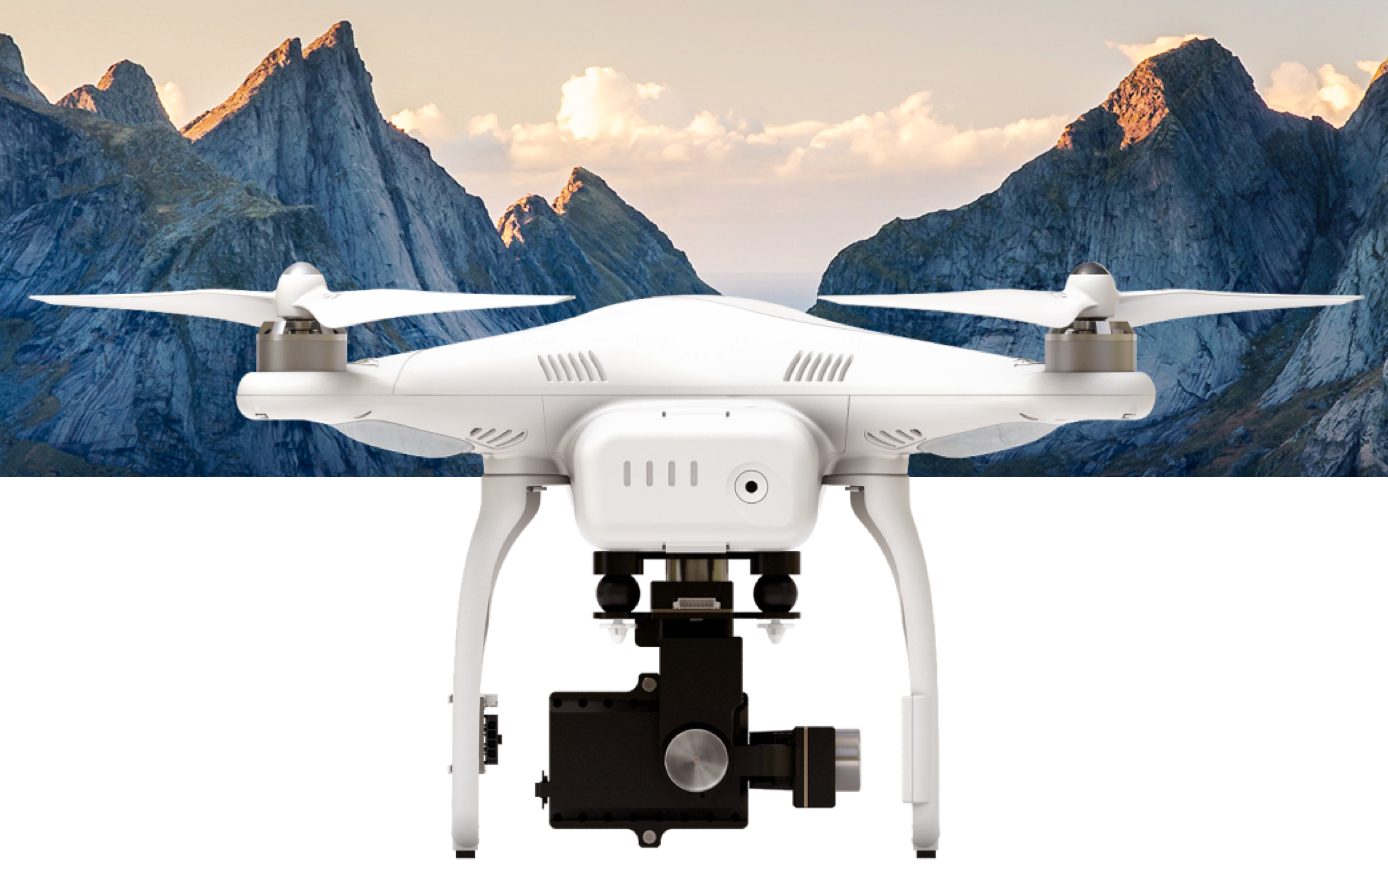 1Zenmuse_H4-3D_-_Features___DJI